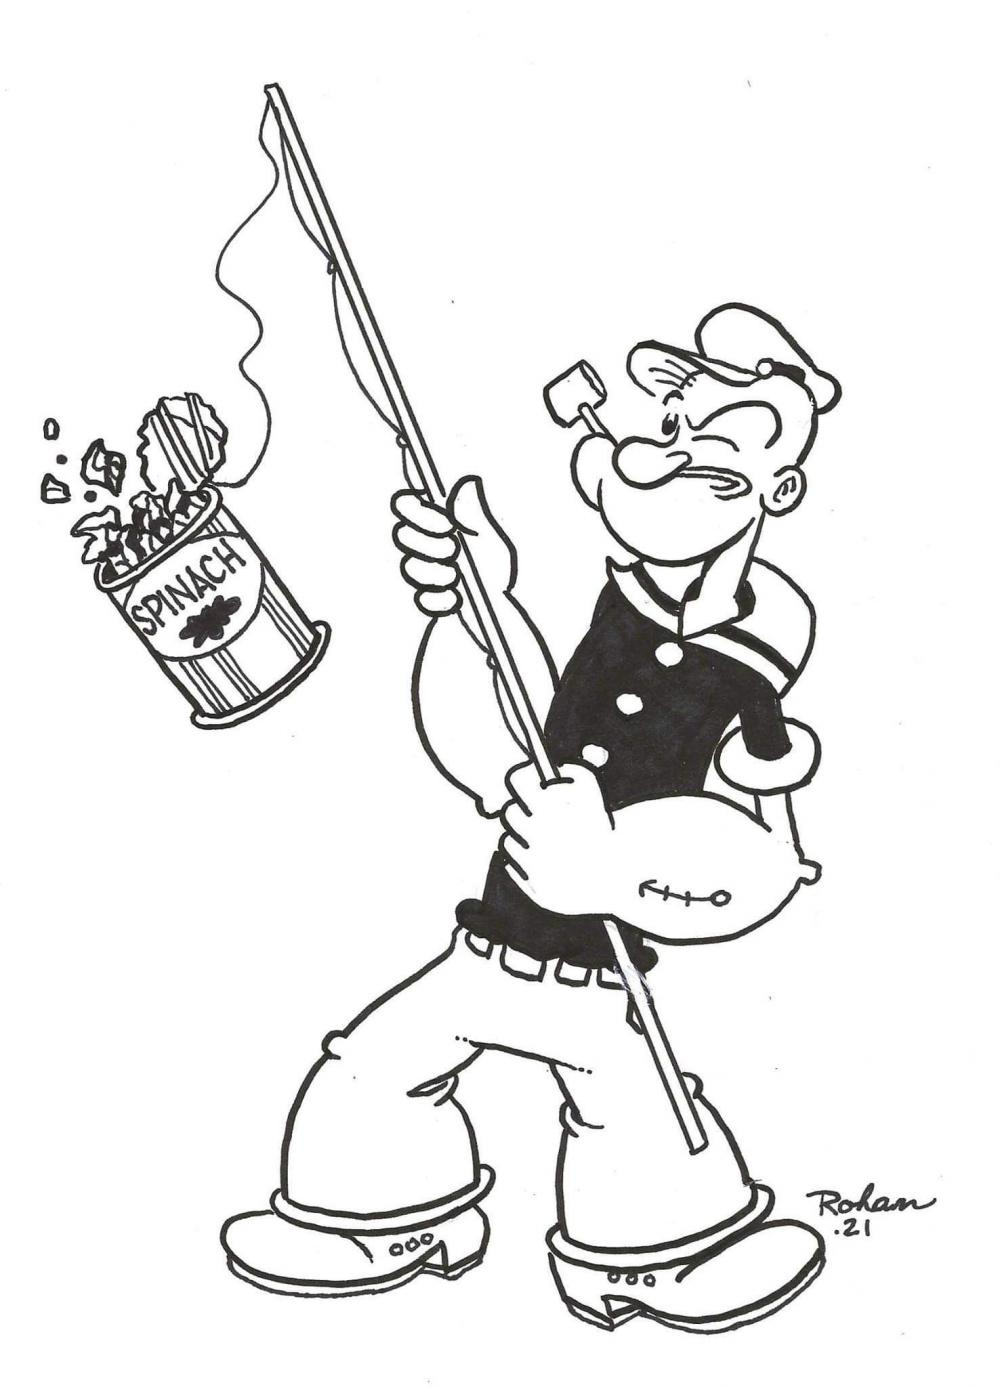 I tried to draw Popeye doing something like catching a can of spinach. He still is my role model.